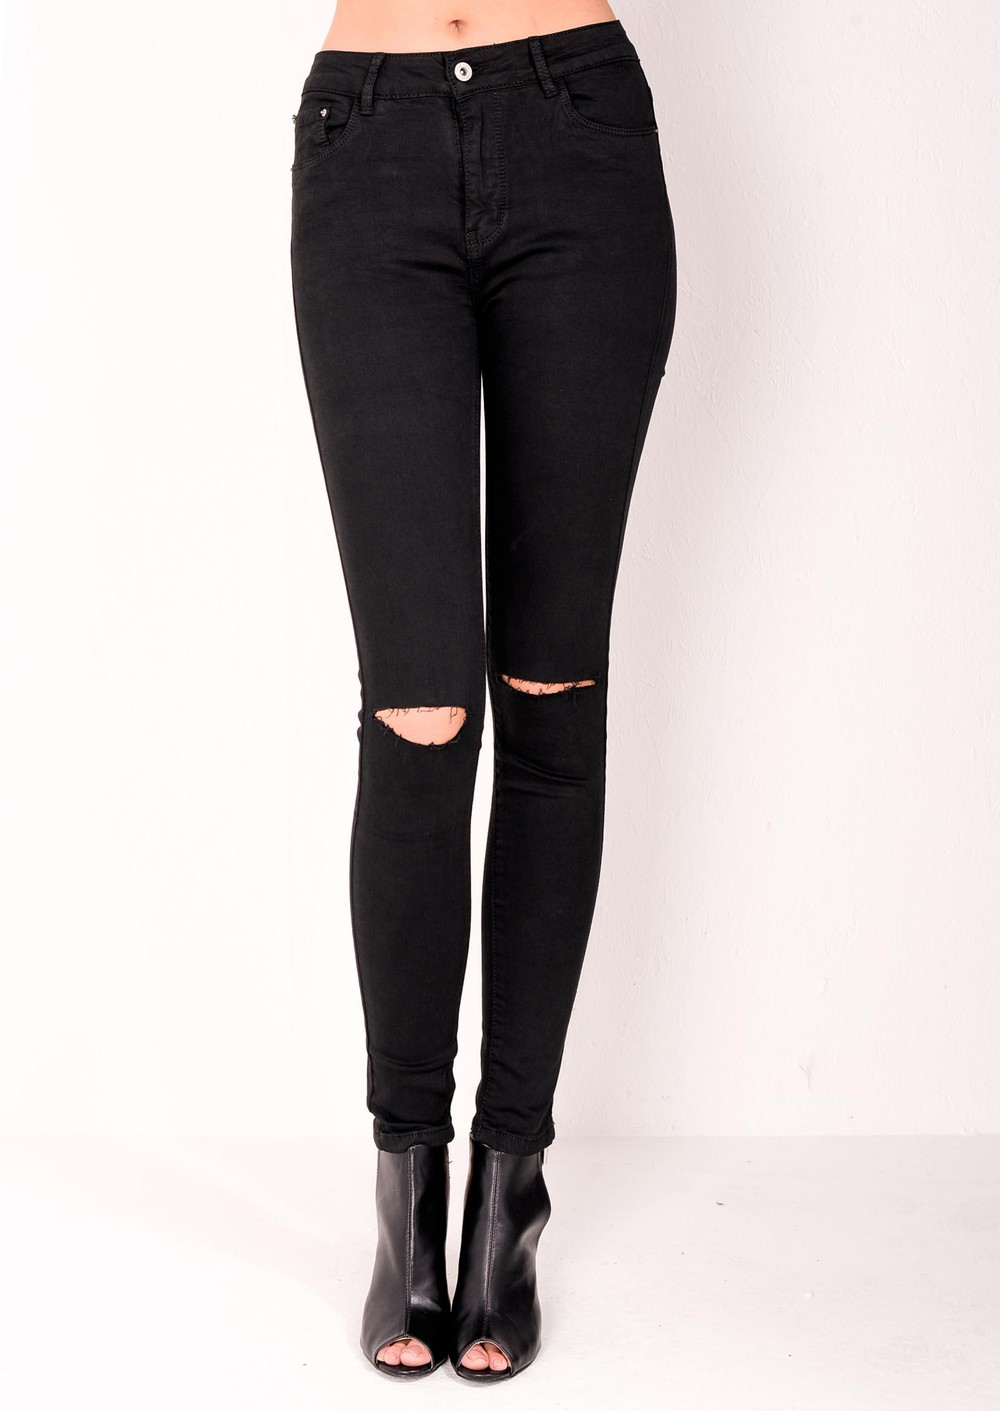 Black ripped high waisted jeans